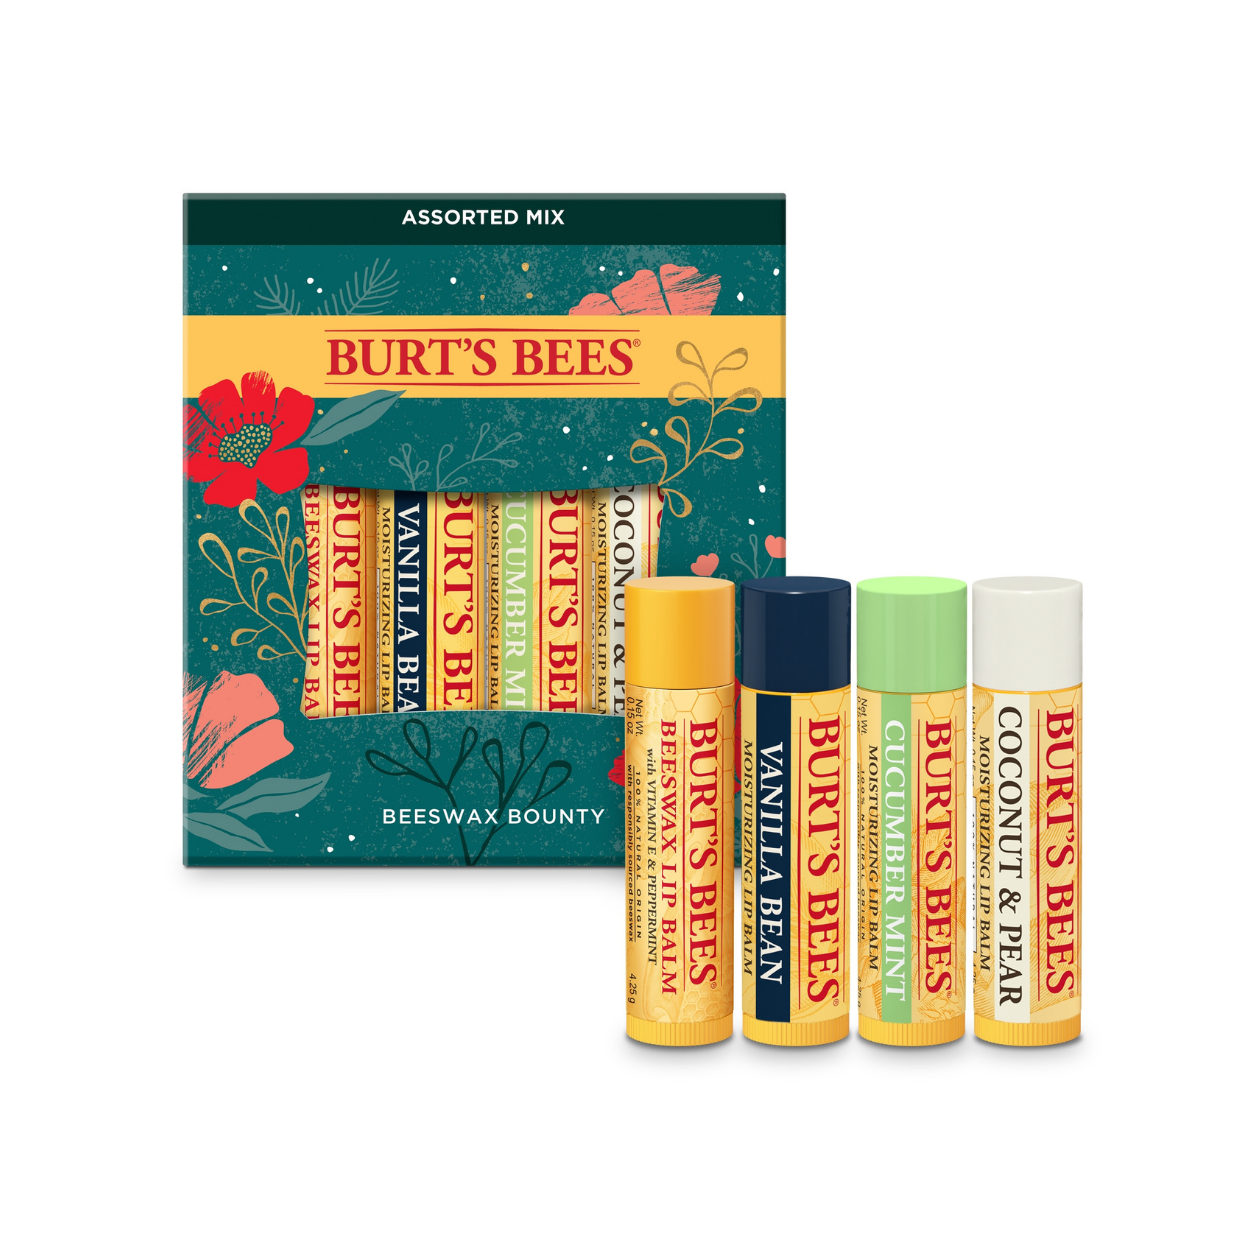 Beeswax Bounty – Assorted Mix